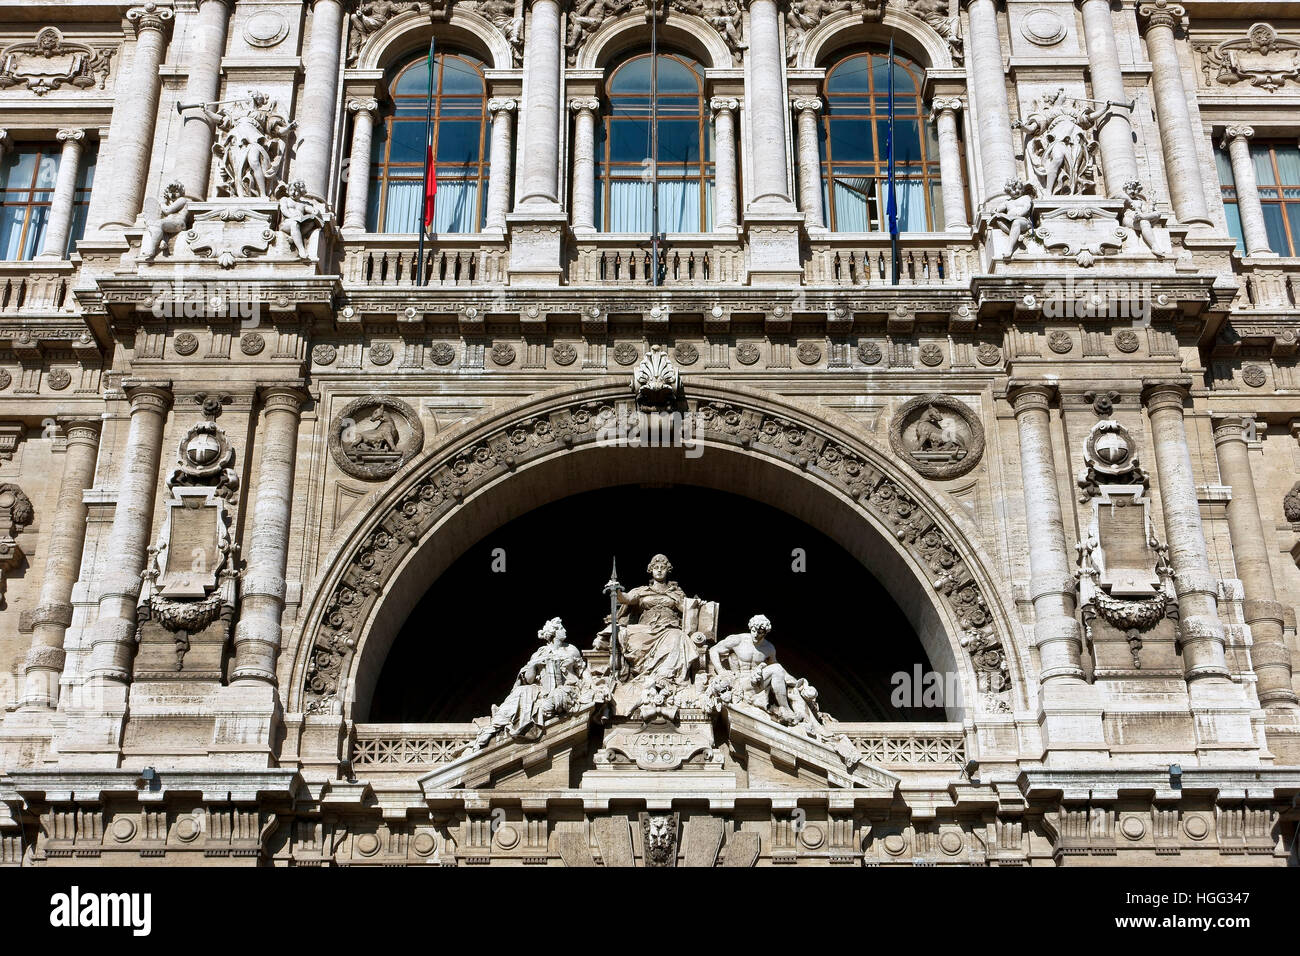 Italian Supreme Court of Cassation (Corte di Cassazione), Palace of Justice, Courthouse. Renaissance, baroque style. - Stock Image